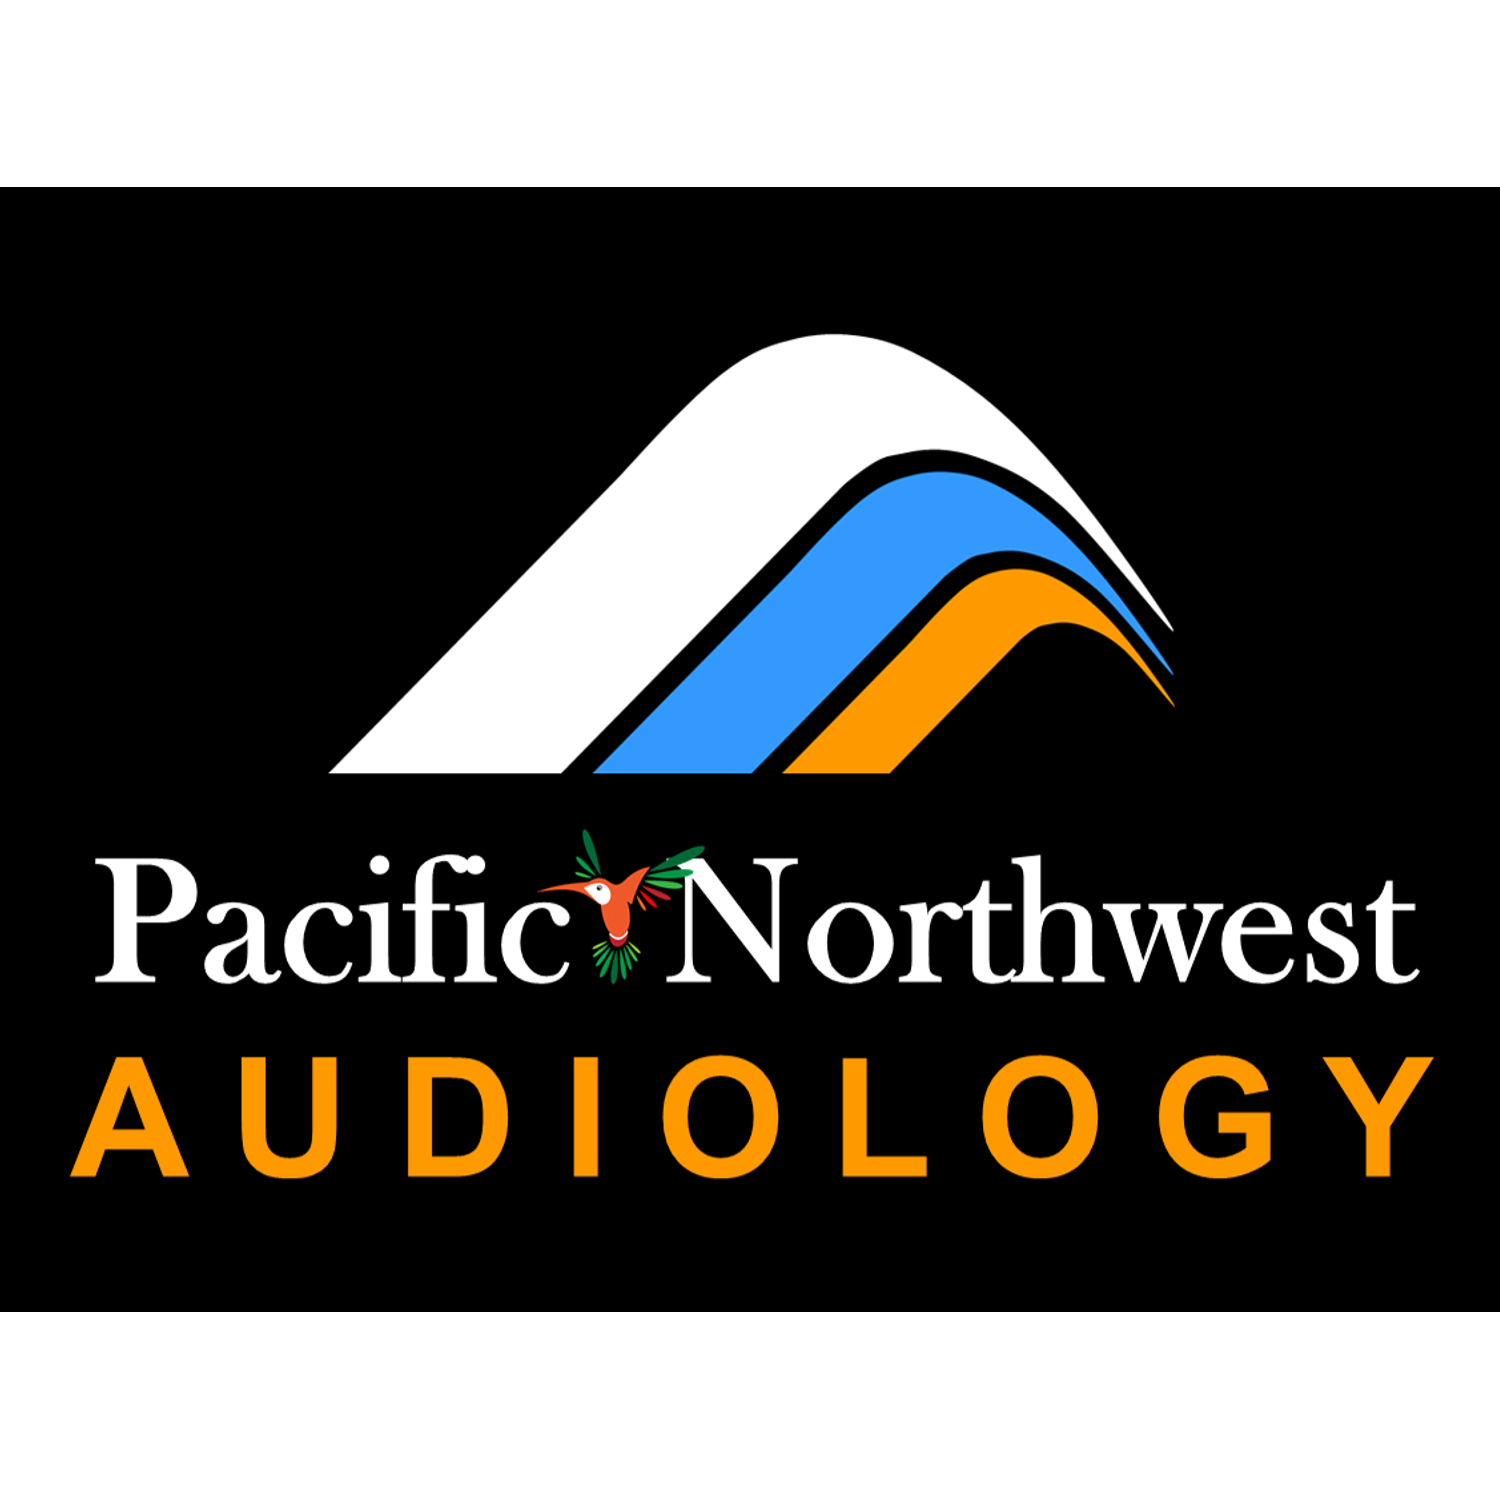 Pacific Northwest Audiology LLC image 13